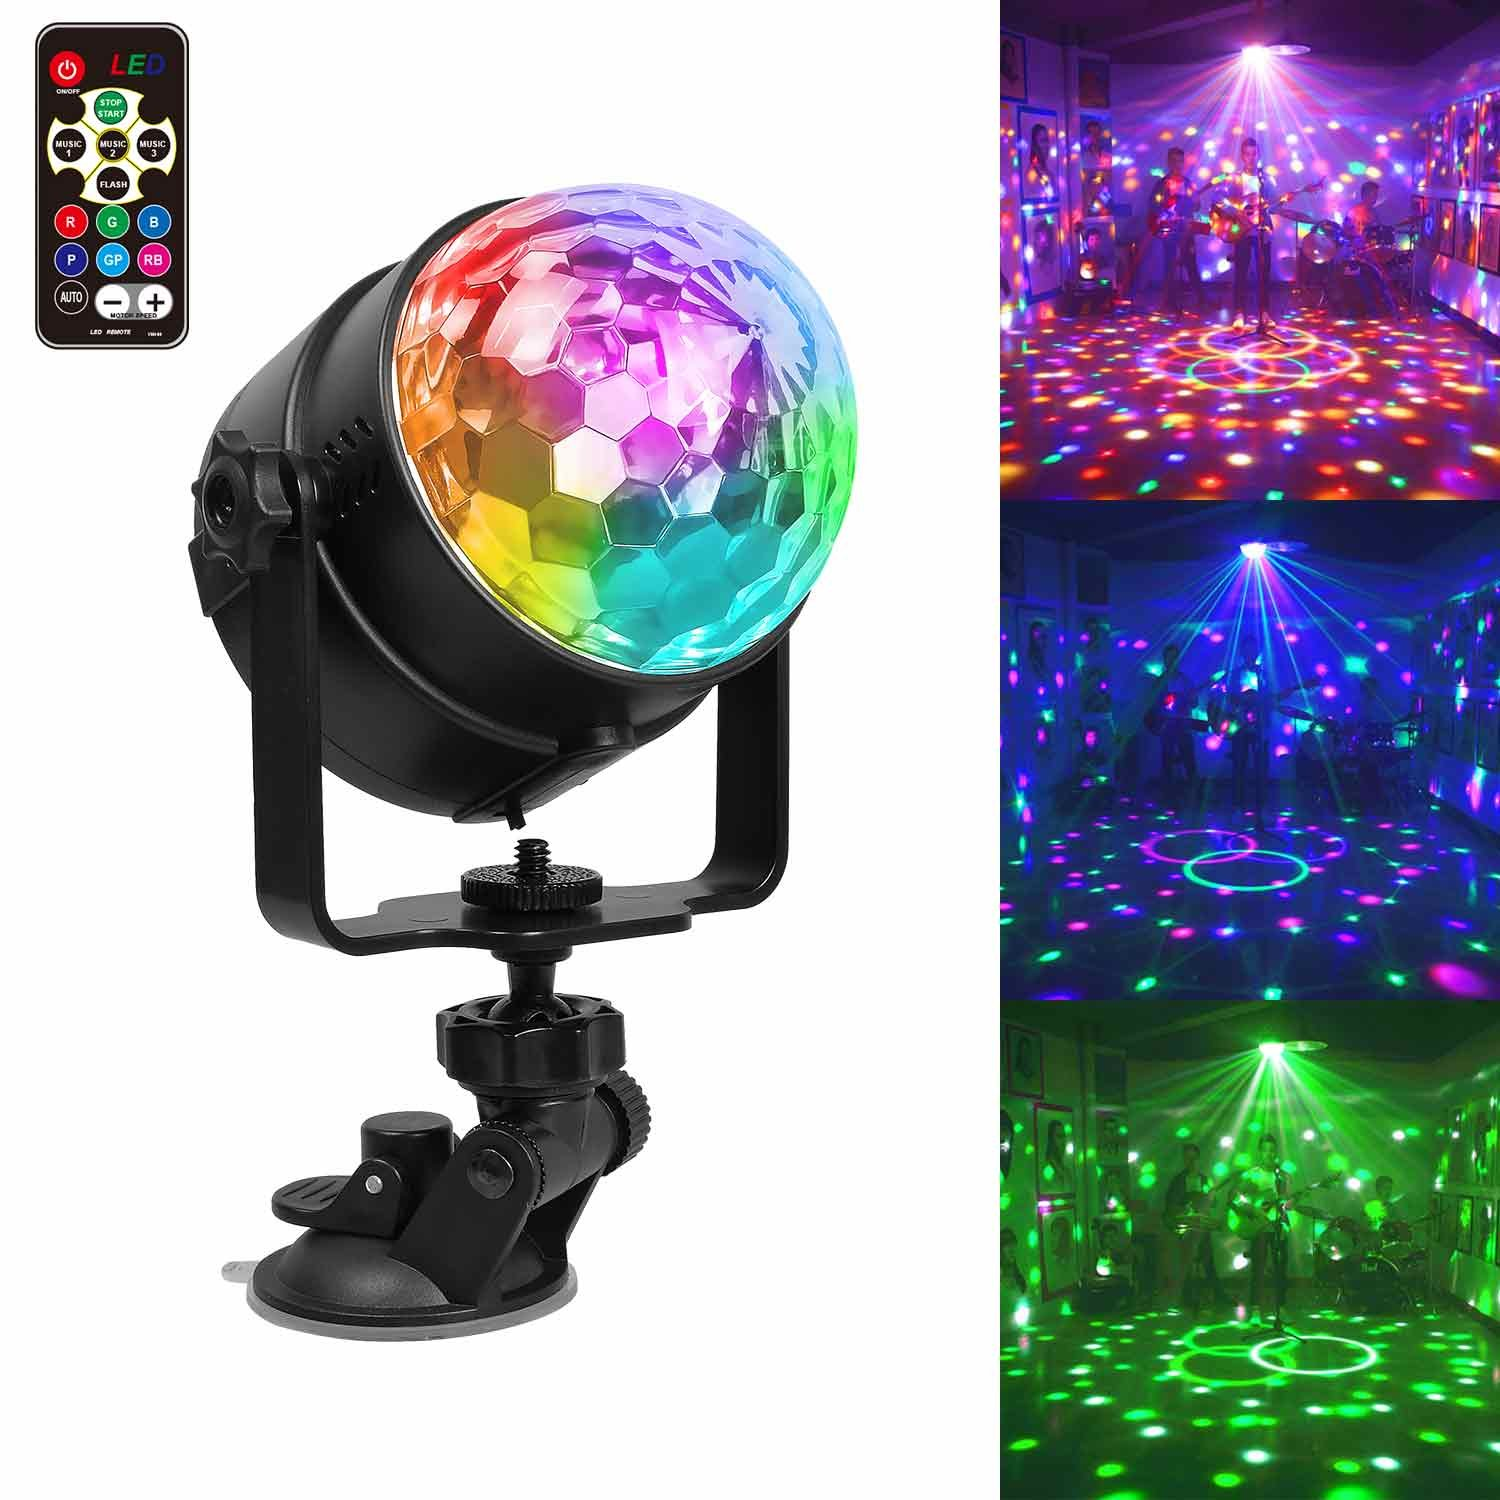 Stage Lights , Chenci Mini Disco DJ Stage Lights 4 Colors RGBP With Remote Control Sound Activated Auto Flash Mini Rotating Crystal Magic Ball Effect Led Stage Lights For KTV Xmas Party Wedding Show Club Pub HOM-00097